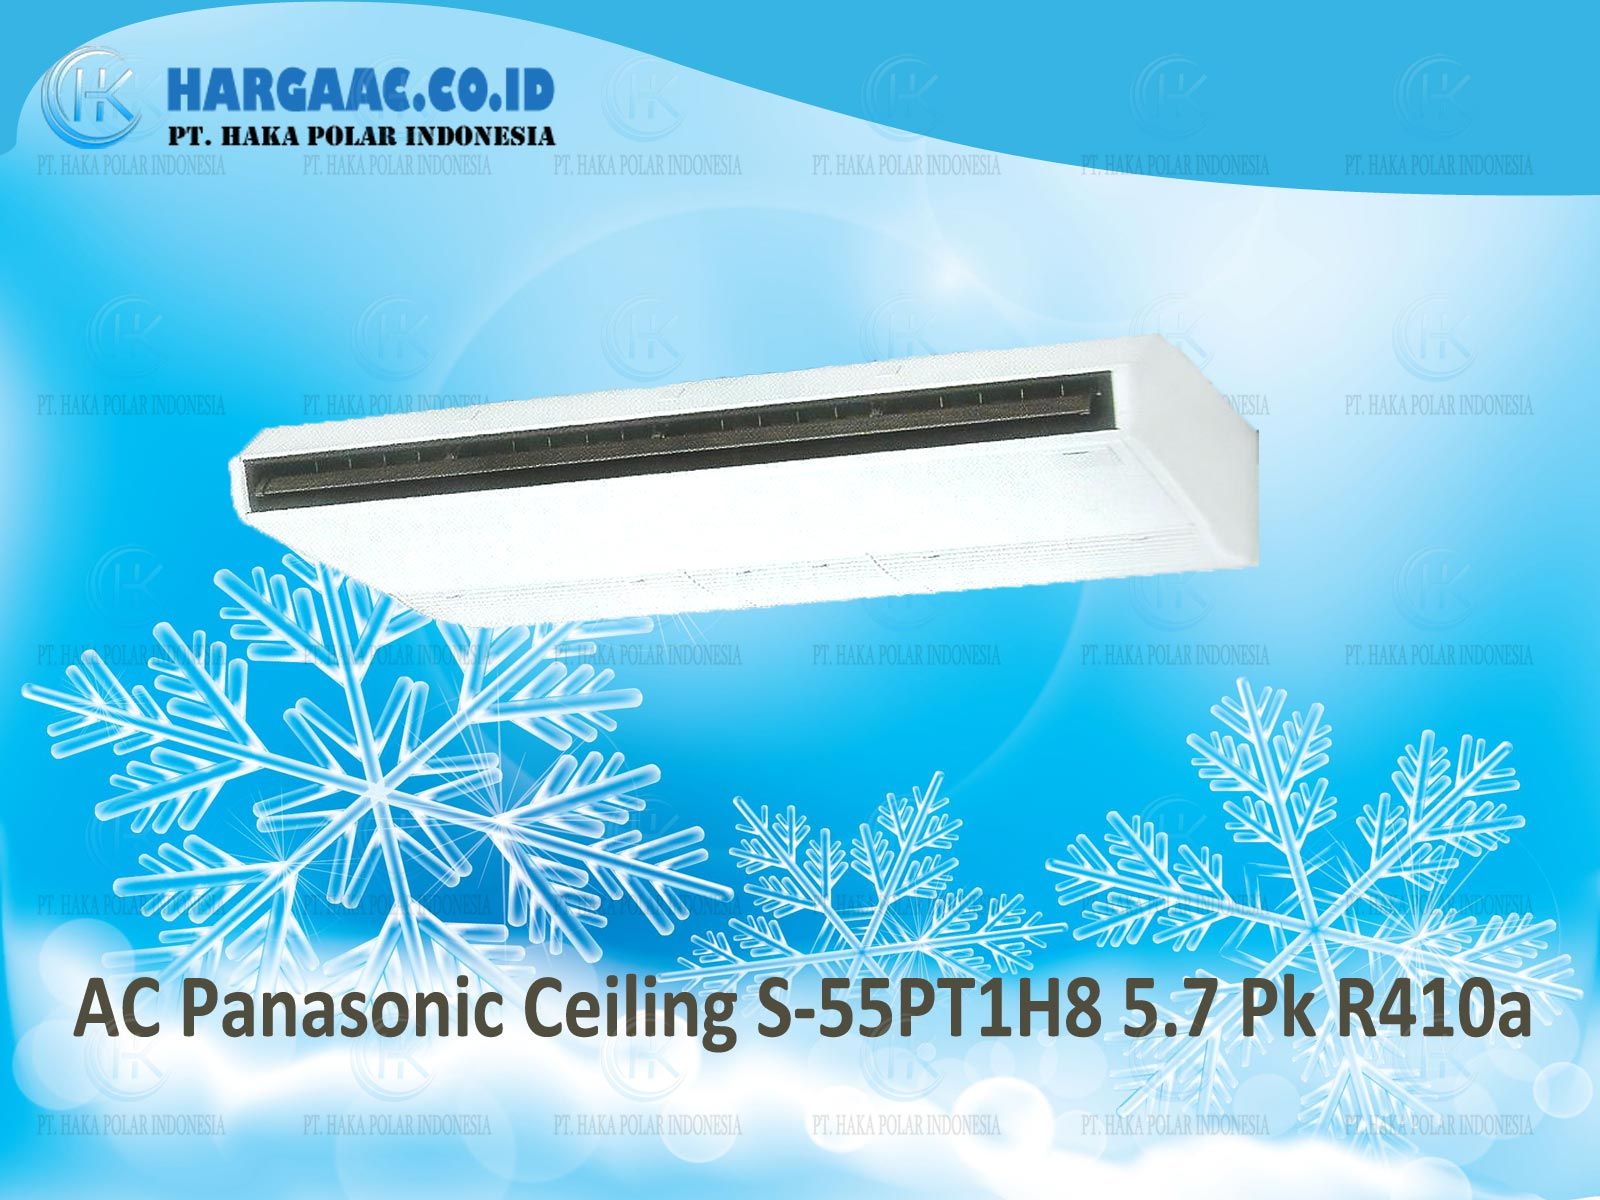 AC Panasonic Ceiling S-55PT1H8 3 Phase 5.7 PK R410a